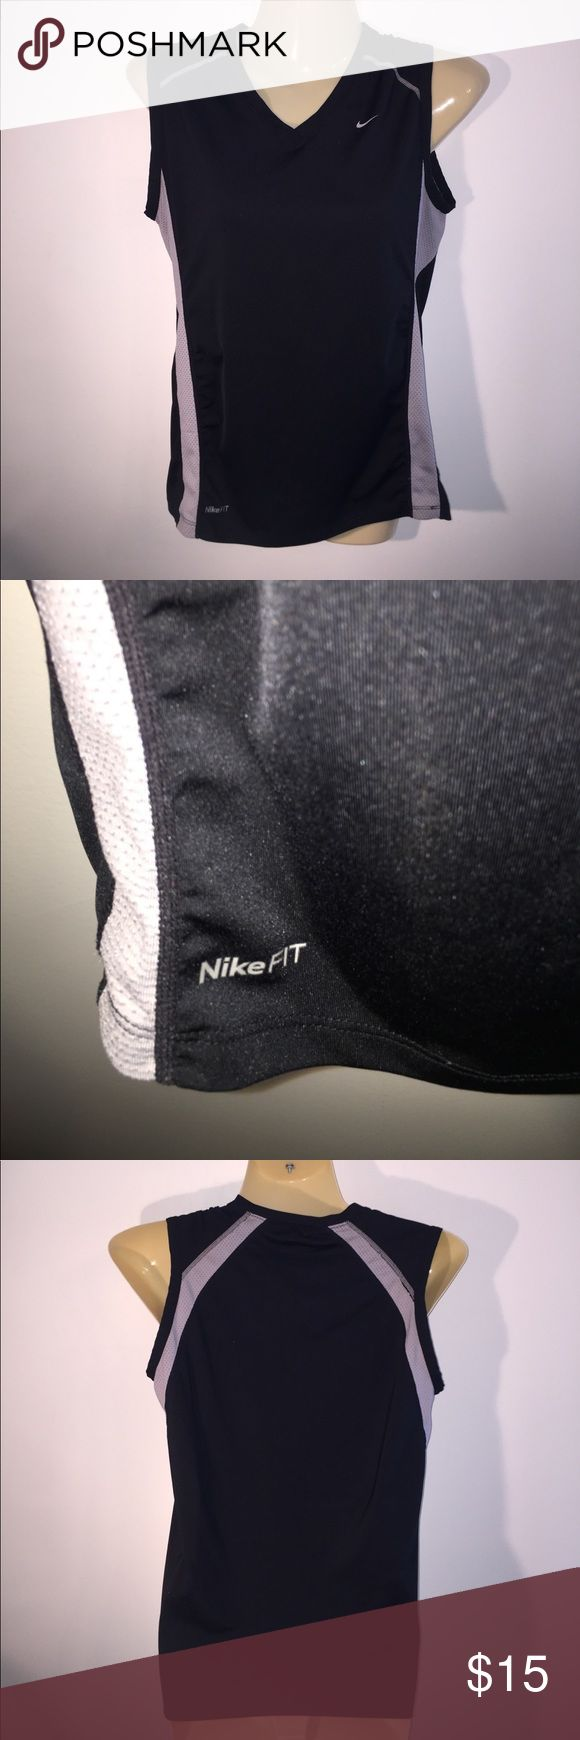 Nike Fit Small Black & Gray Athletic Top EUC Nike Fit Small Black & Gray Athletic Top EUC Nike Tops Muscle Tees